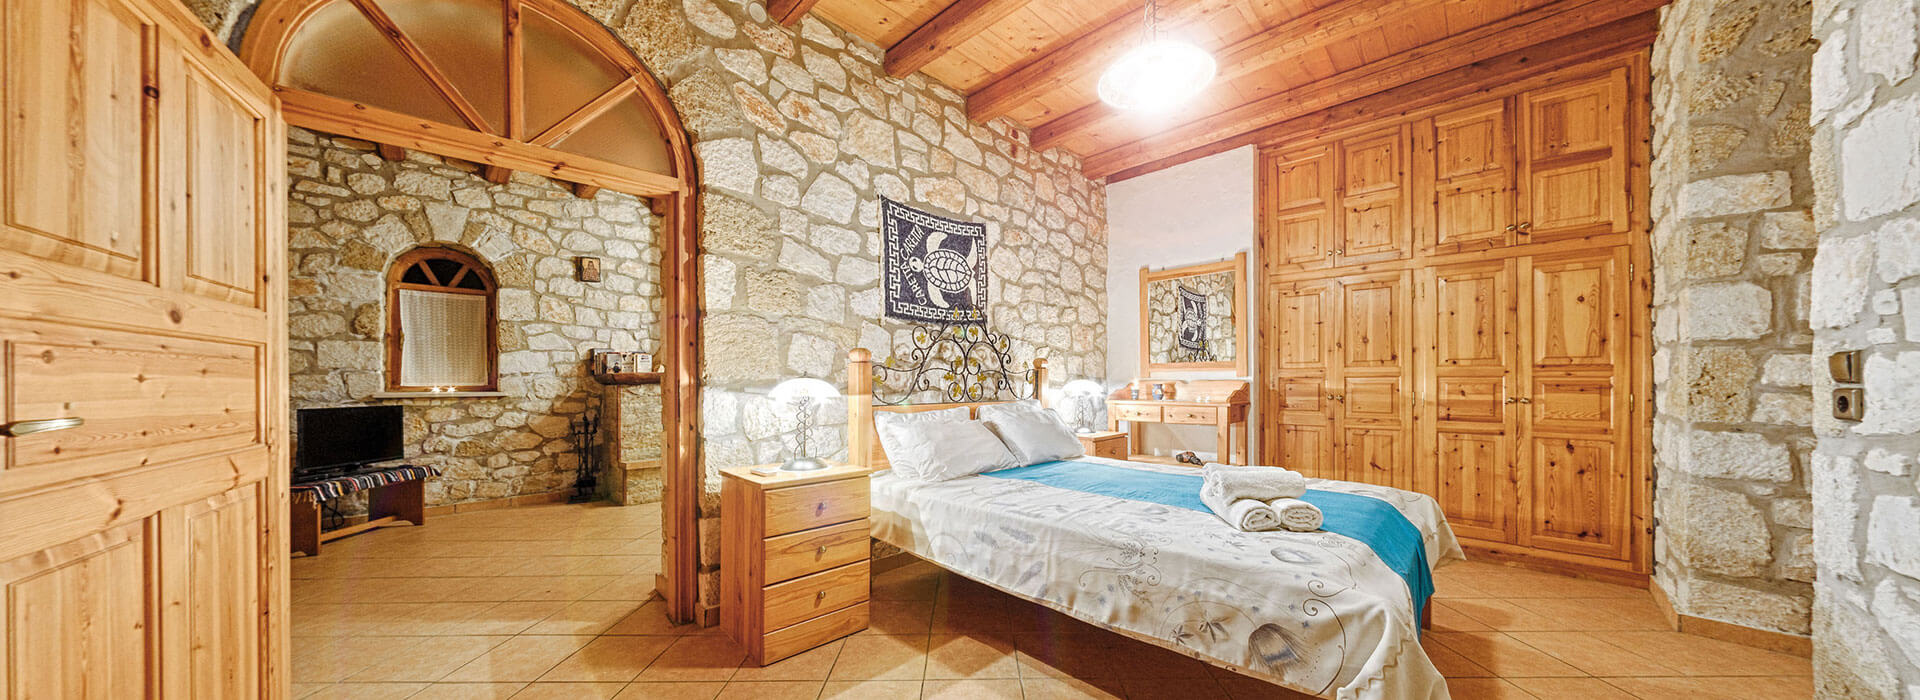 deluxe three-bedroom apartment - joanna's traditional stone villas - vasilikos zante zakynthos greece